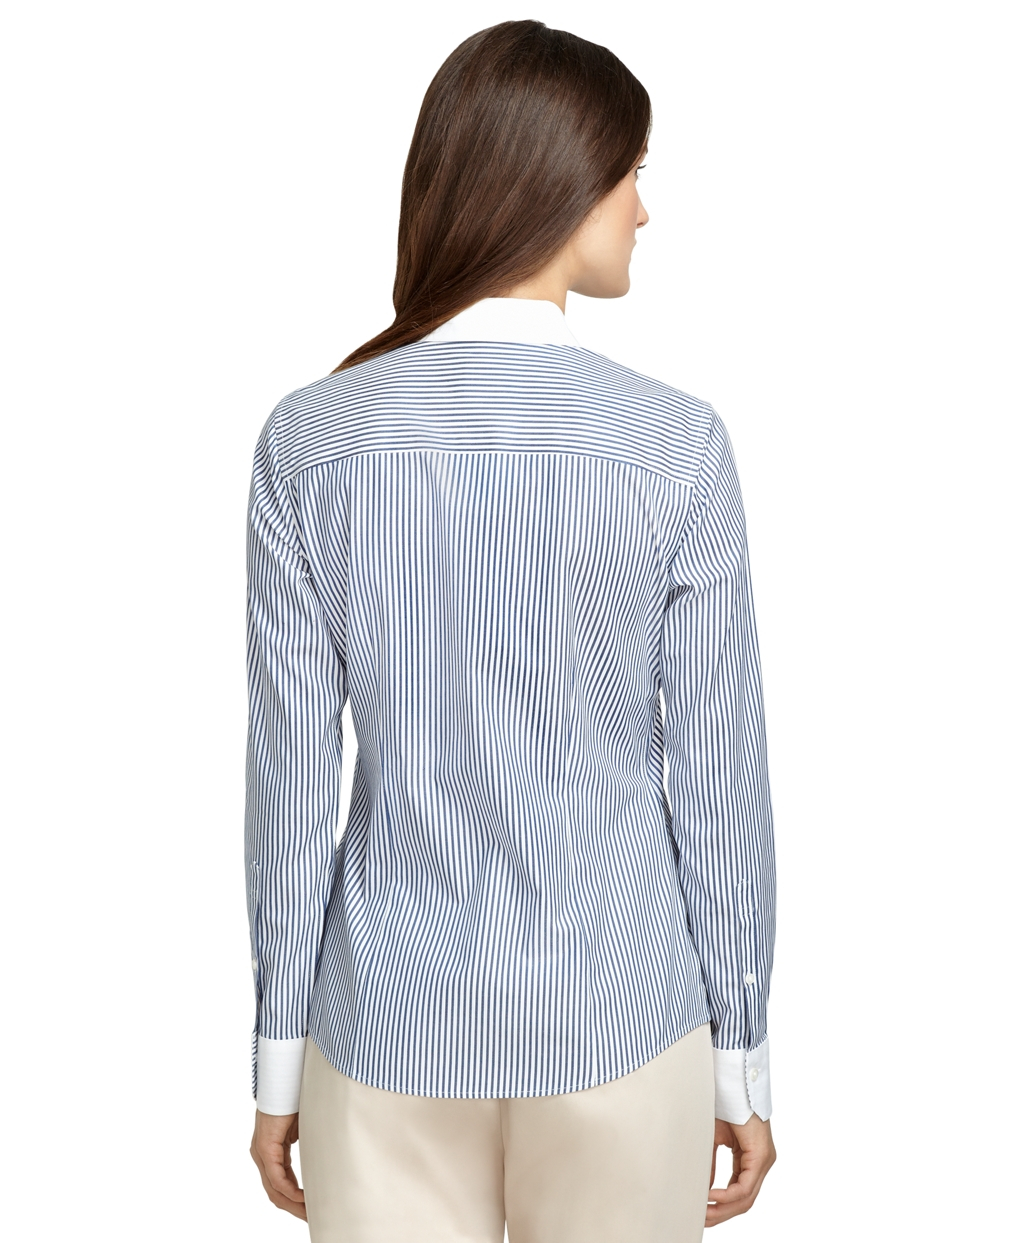 Brooks brothers tailored fit noniron thin stripe dress for Brooks brothers dress shirt fit guide